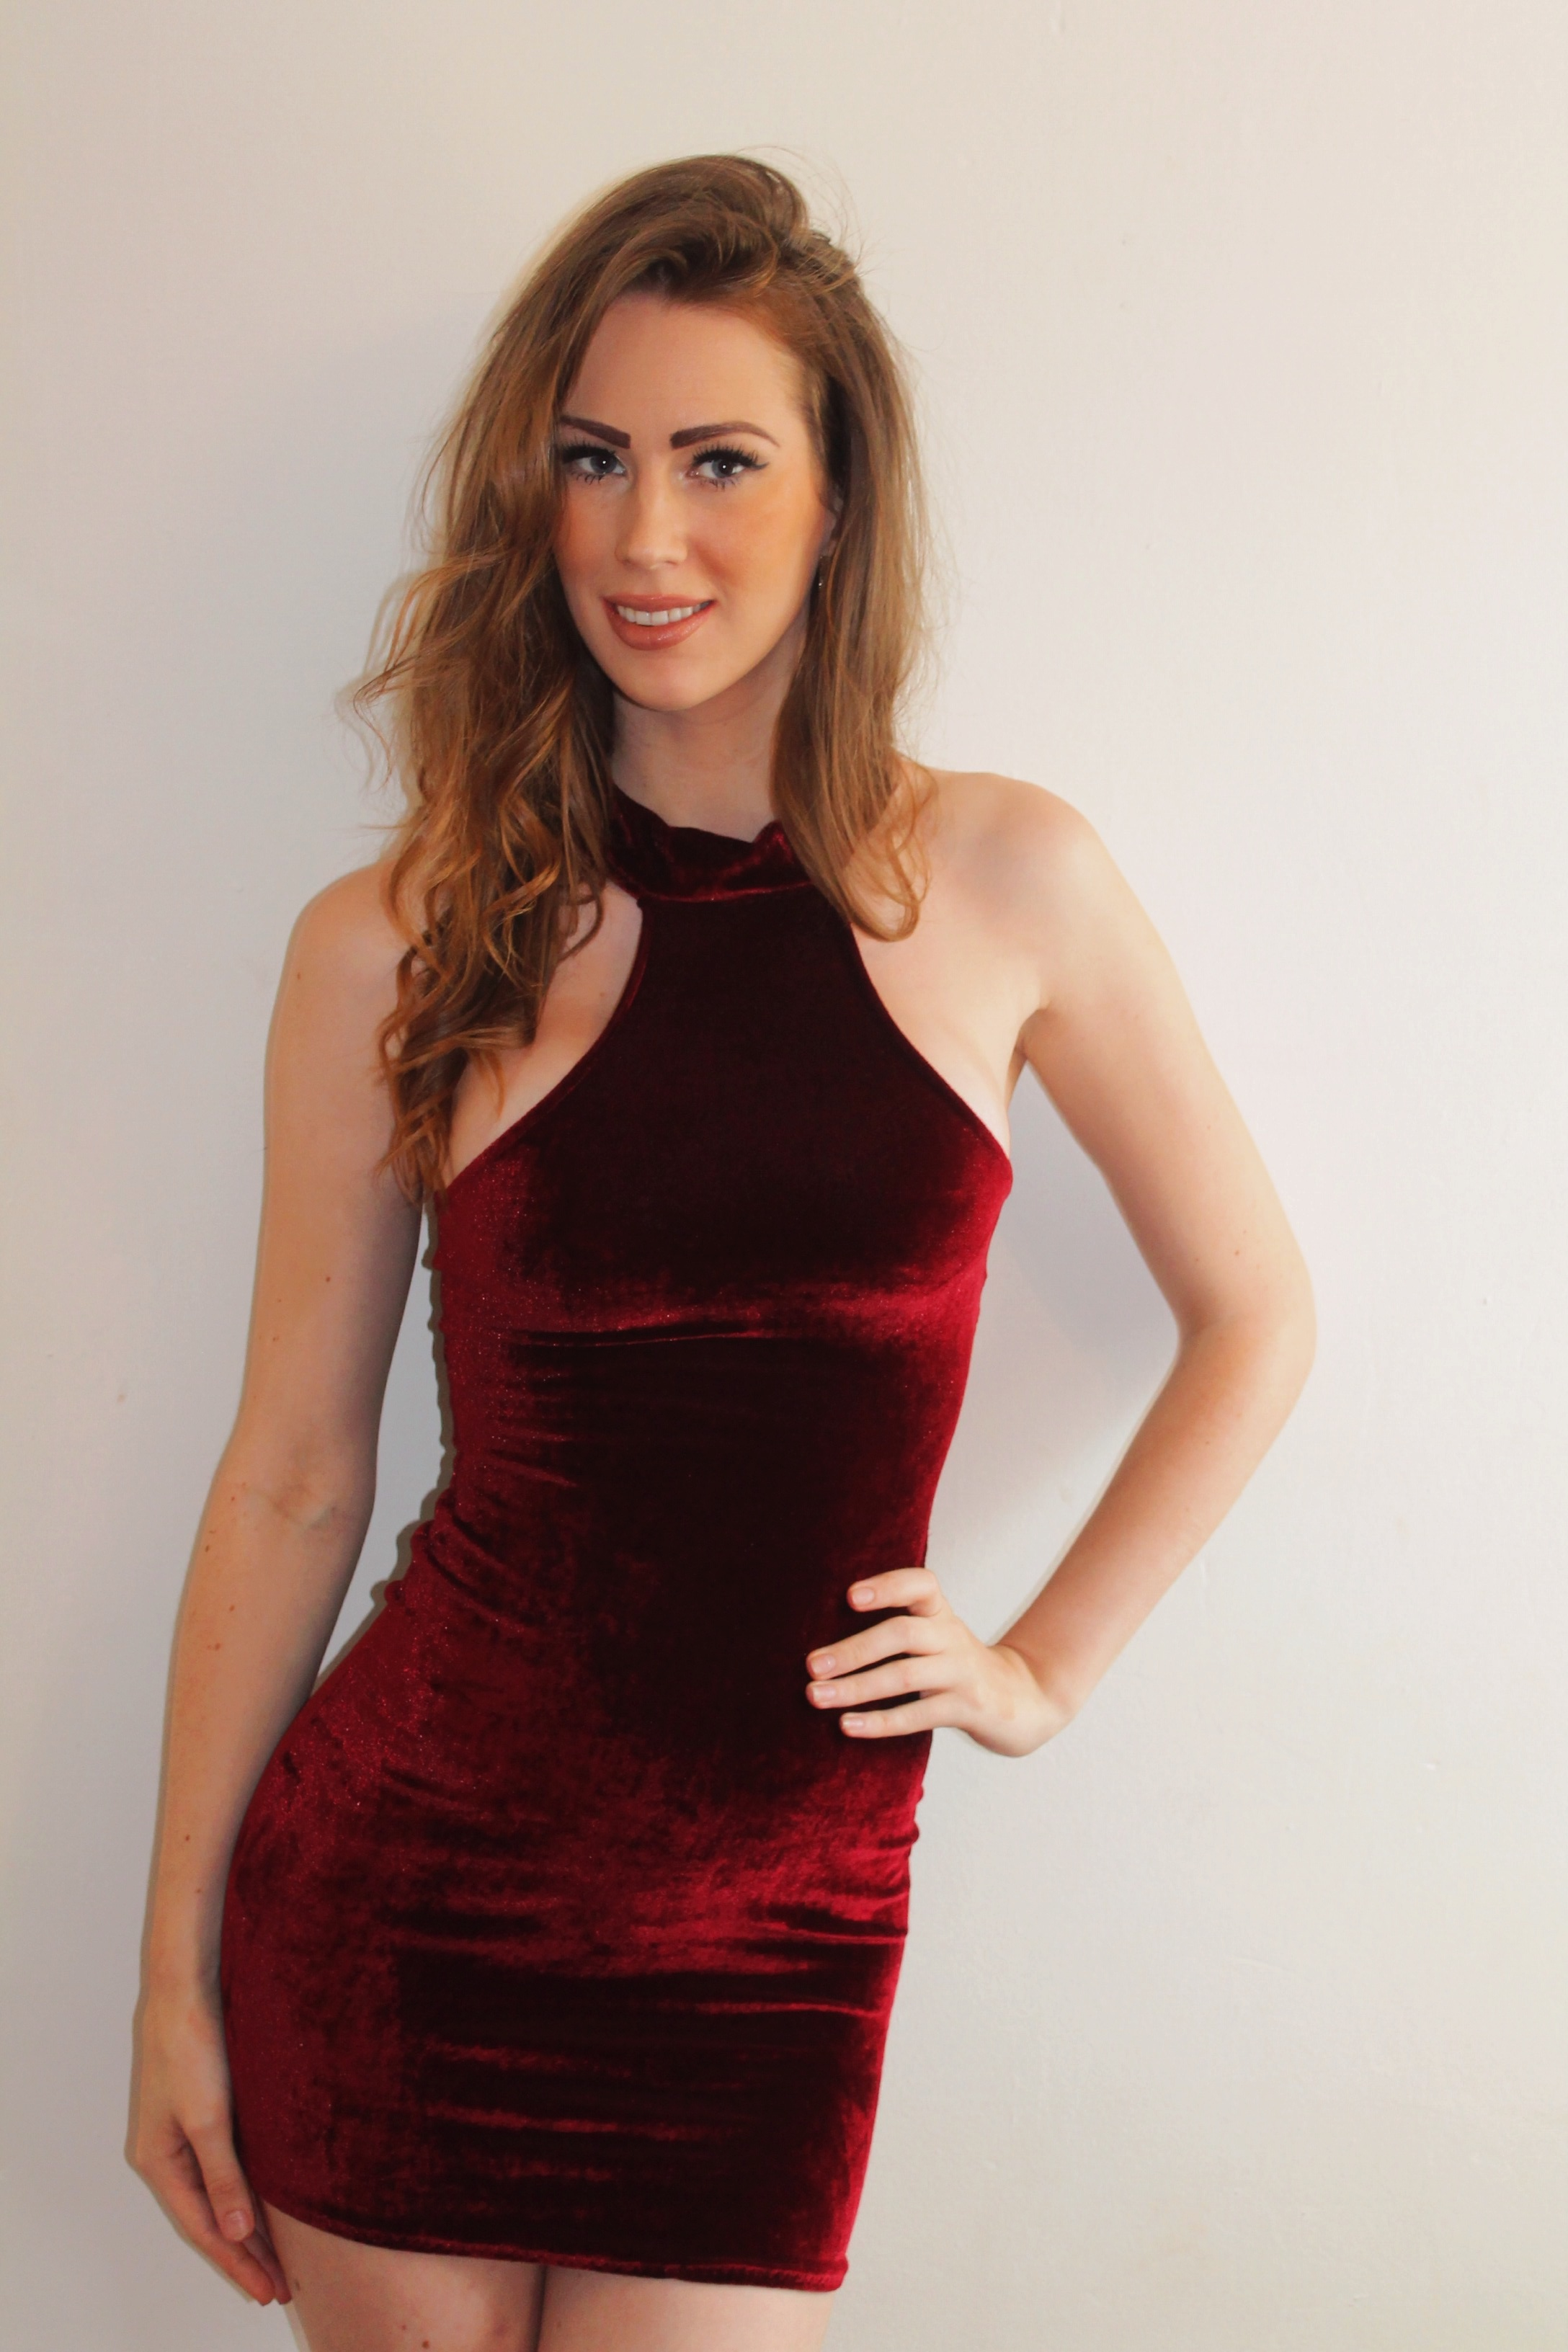 From crushed velvet 2-piece prom dresses to mermaid dresses with a velvet bodice, top prom designers such as Sherri Hill, La Femme, Alyce Paris, and Morilee Prom all flawlessly execute this trend. One of the best things about velvet prom dresses is that the fabric shines and makes a statement all on its own without the embellishments.